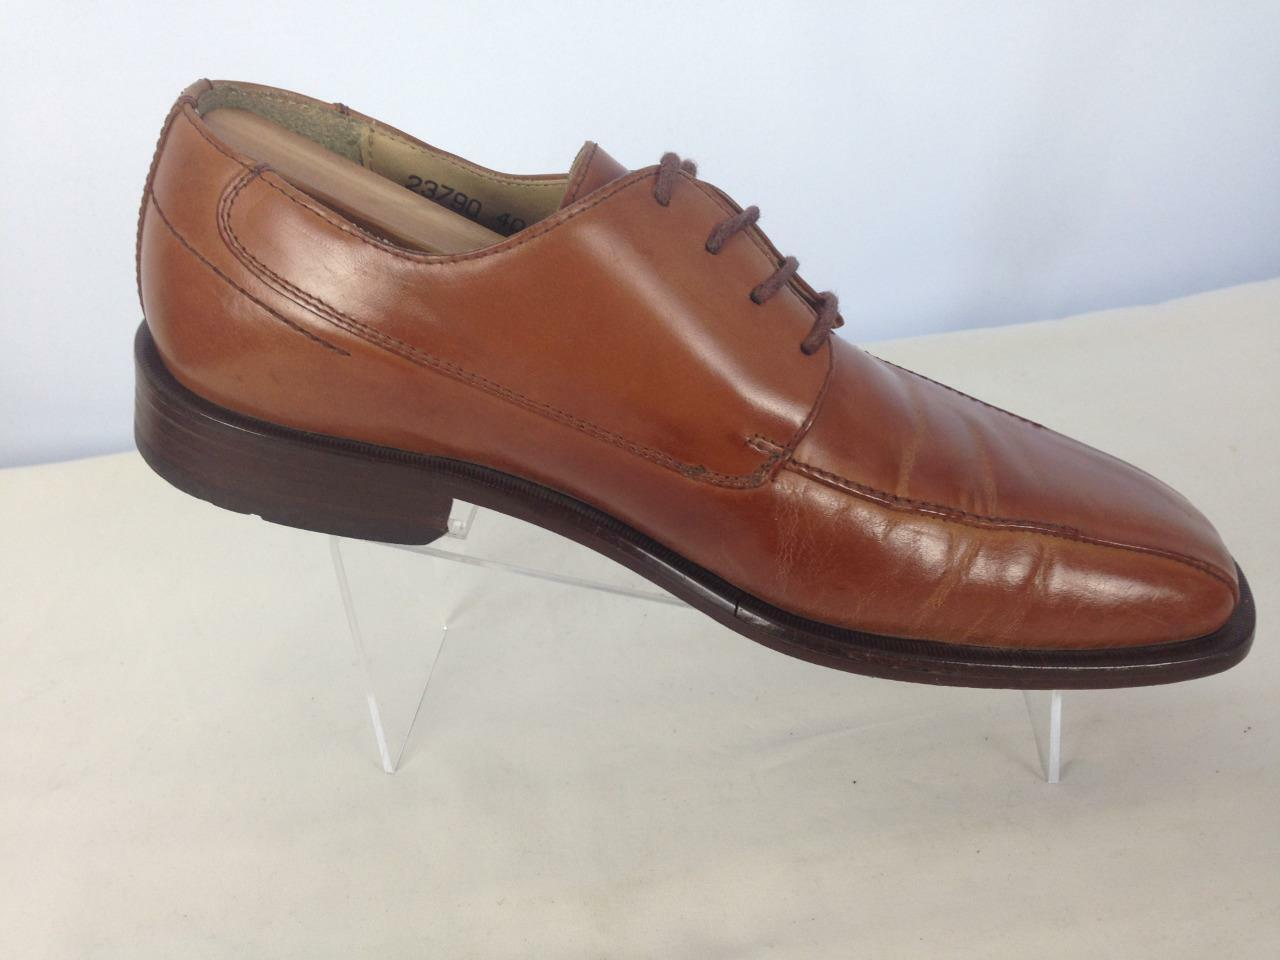 Stacy Adams Men's Brown Leather Lace-up Dress shoes Sz 7M   B612